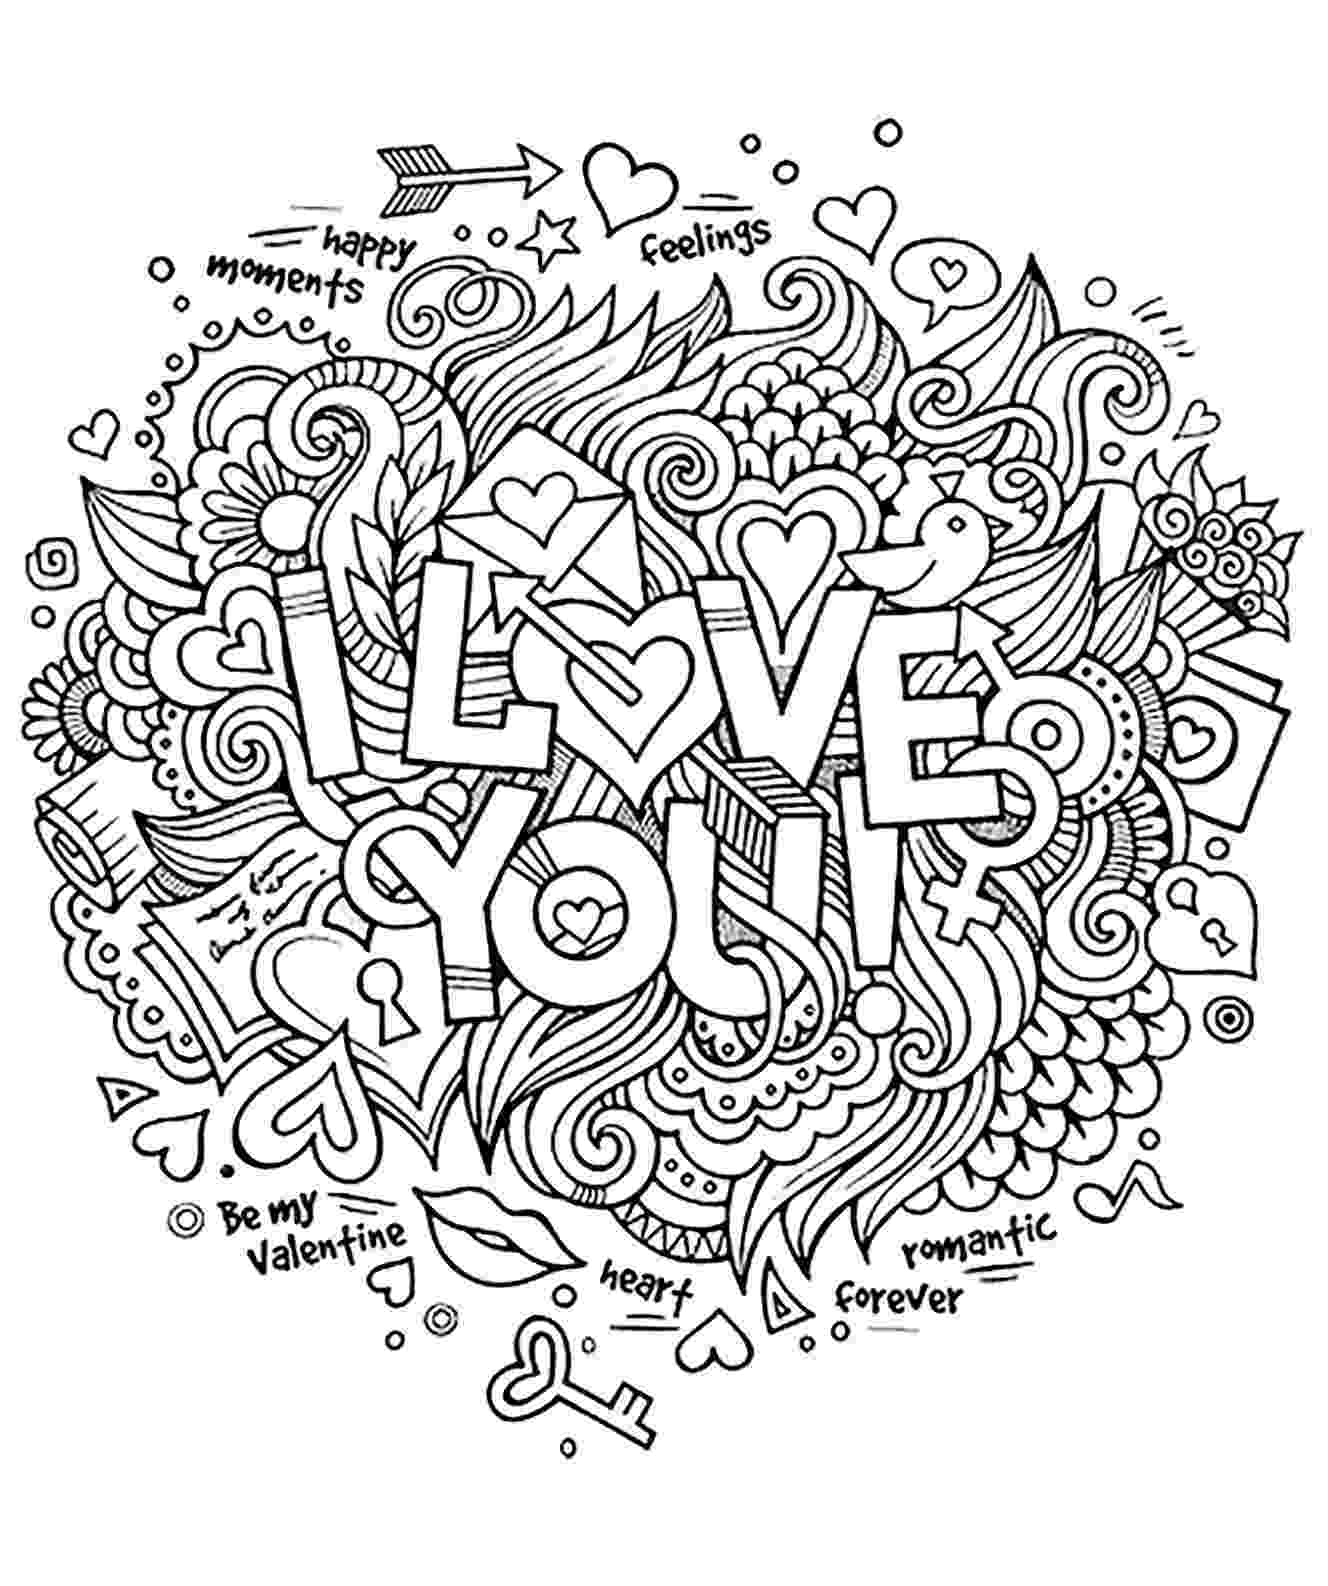 coloring love pictures quoti love you quot coloring pages love coloring pictures